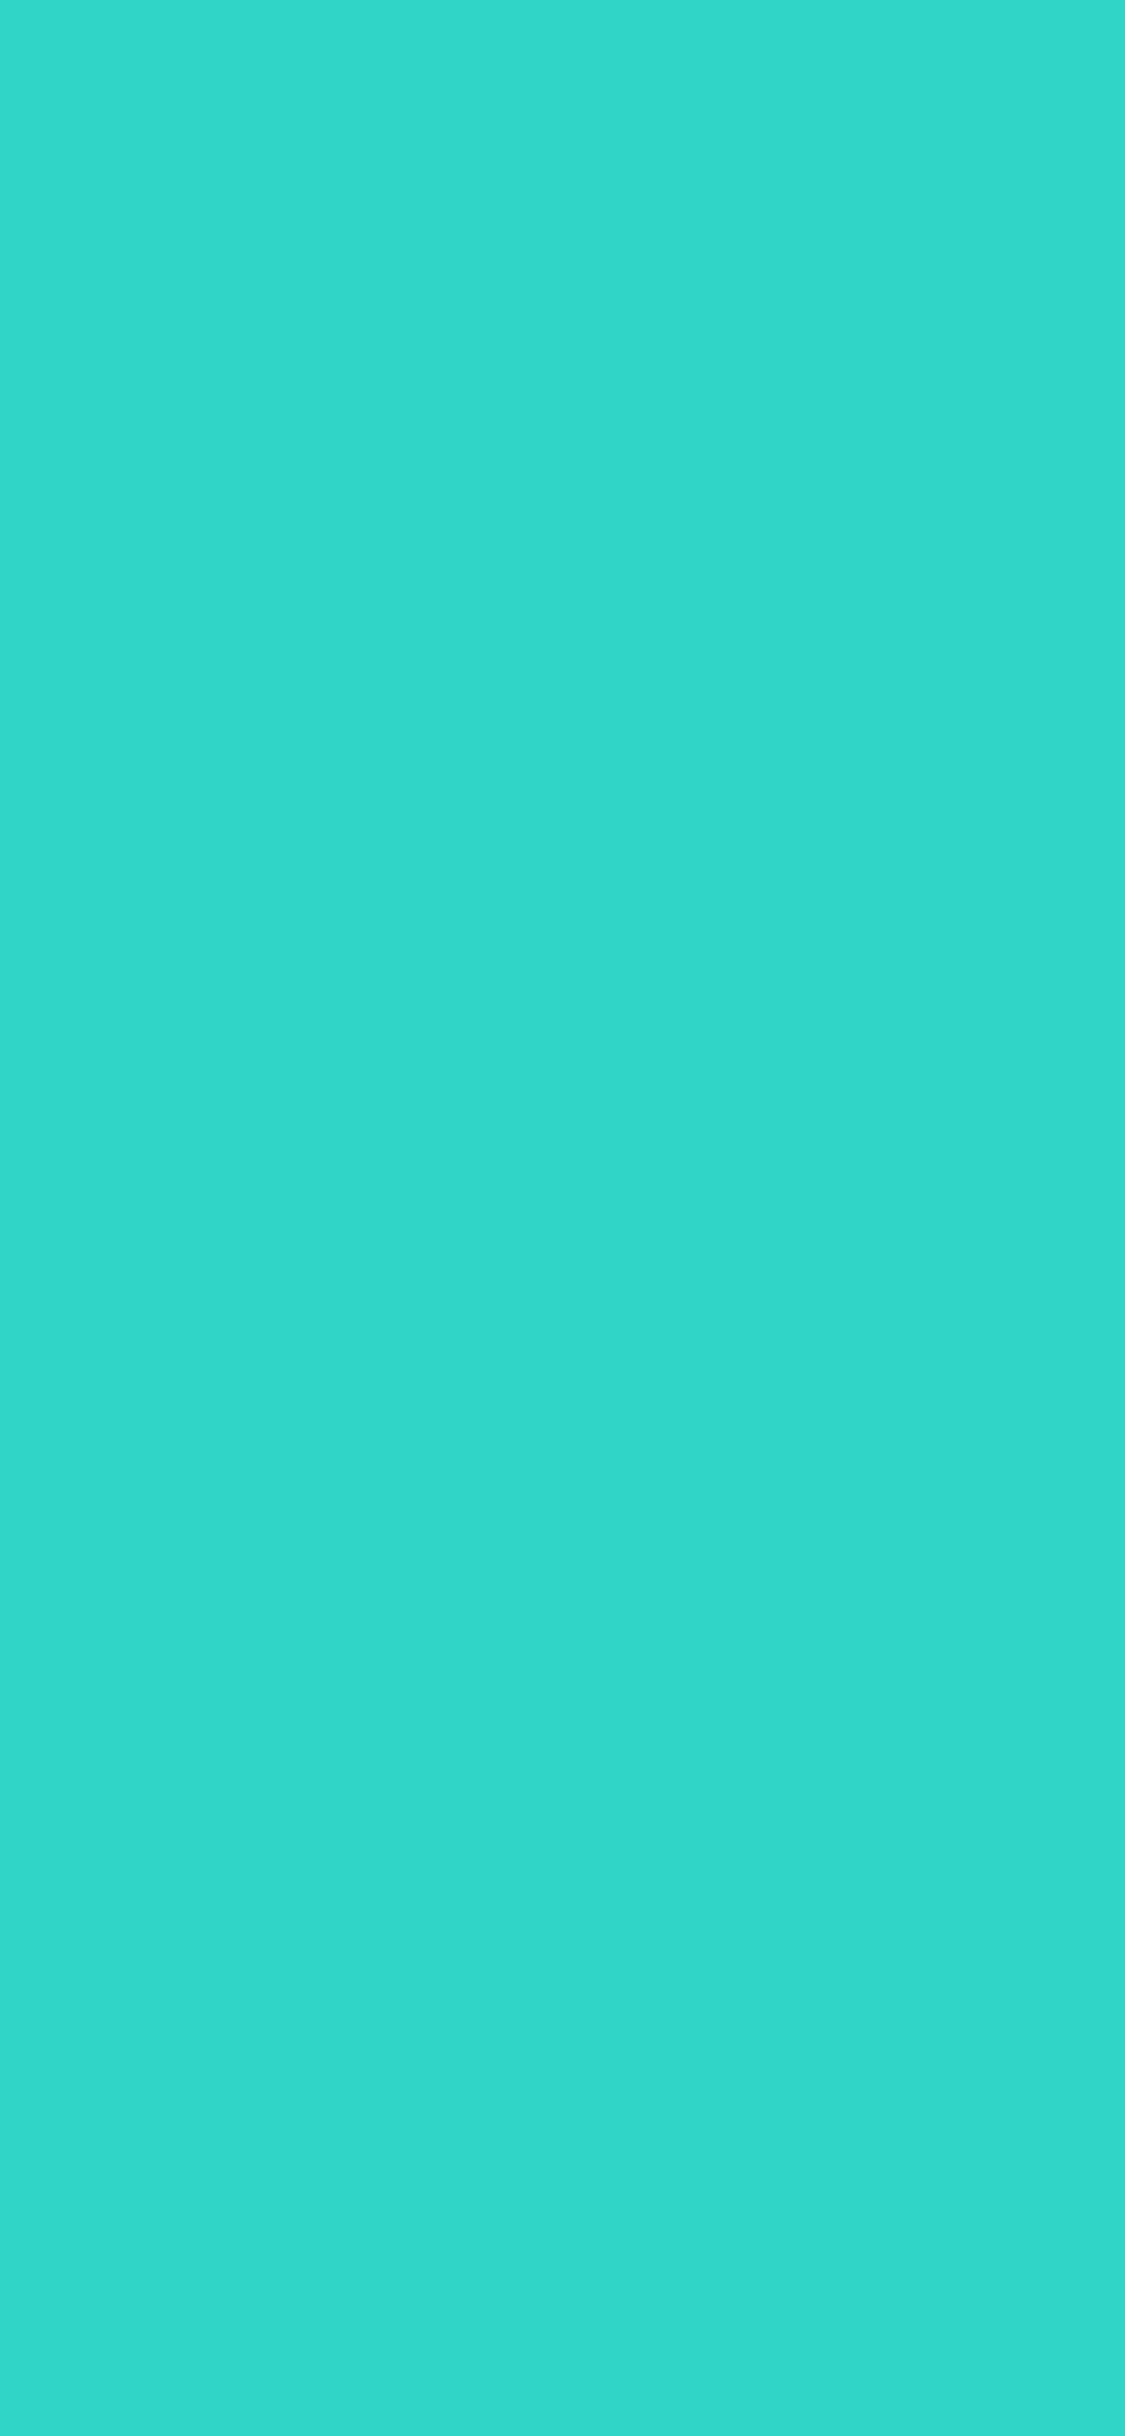 1125x2436 Turquoise Solid Color Background